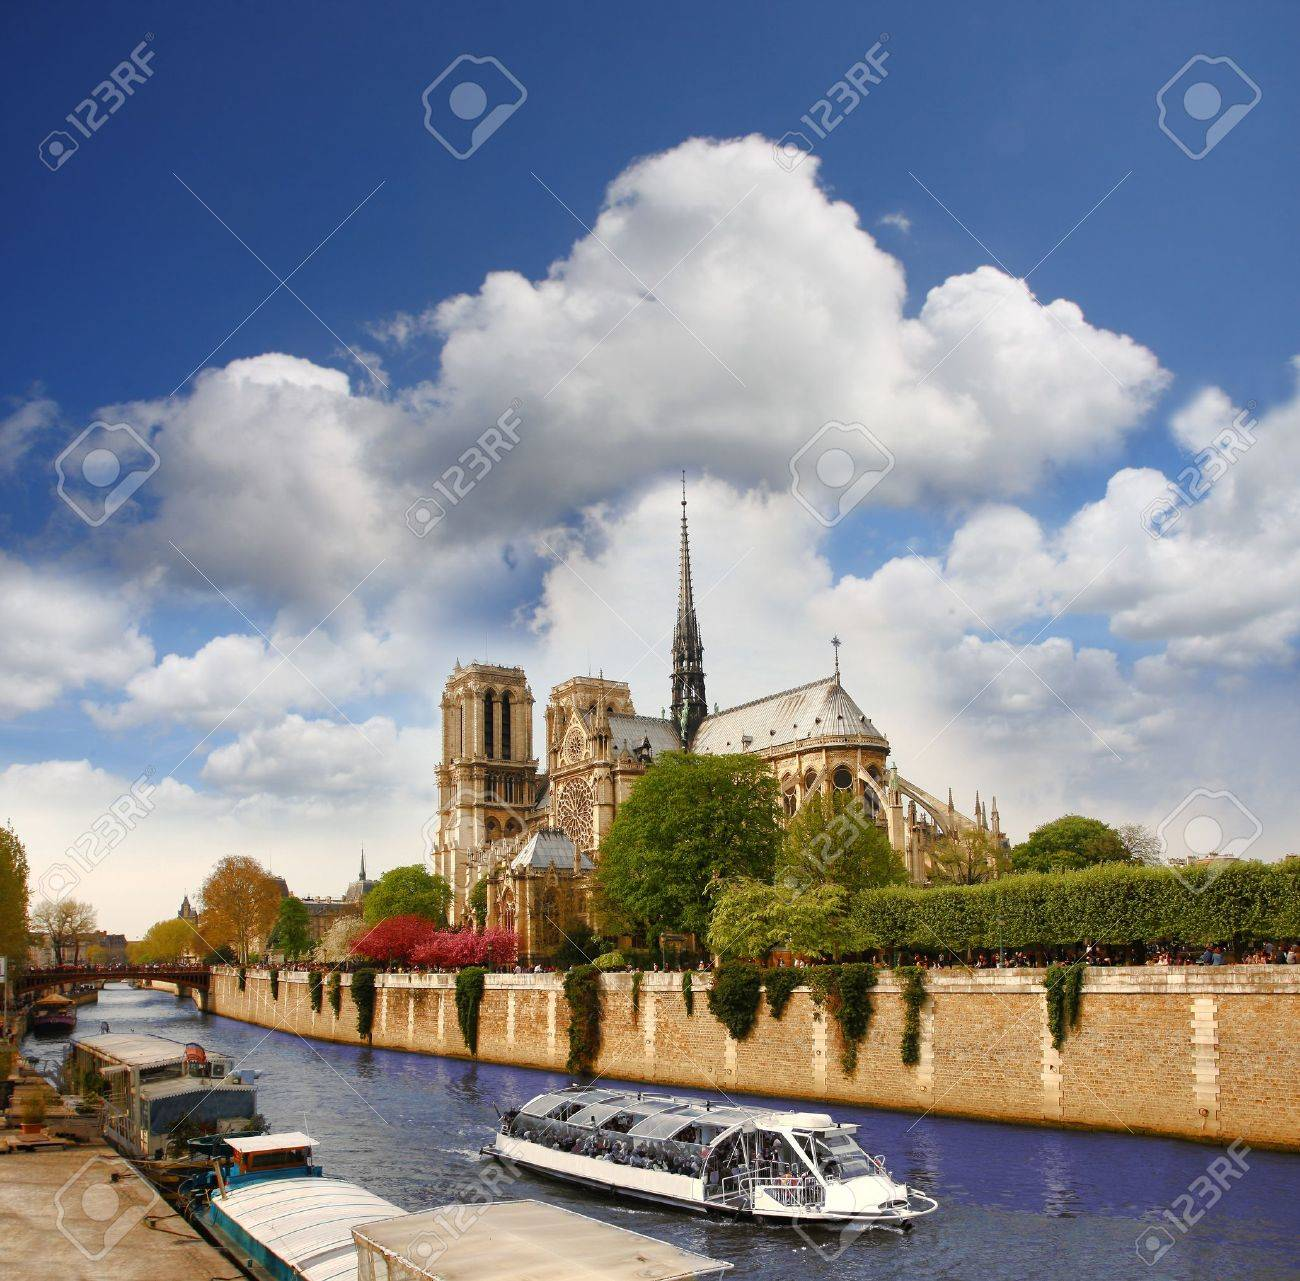 Paris, Notre Dame with boat on Seine, France - 15421415